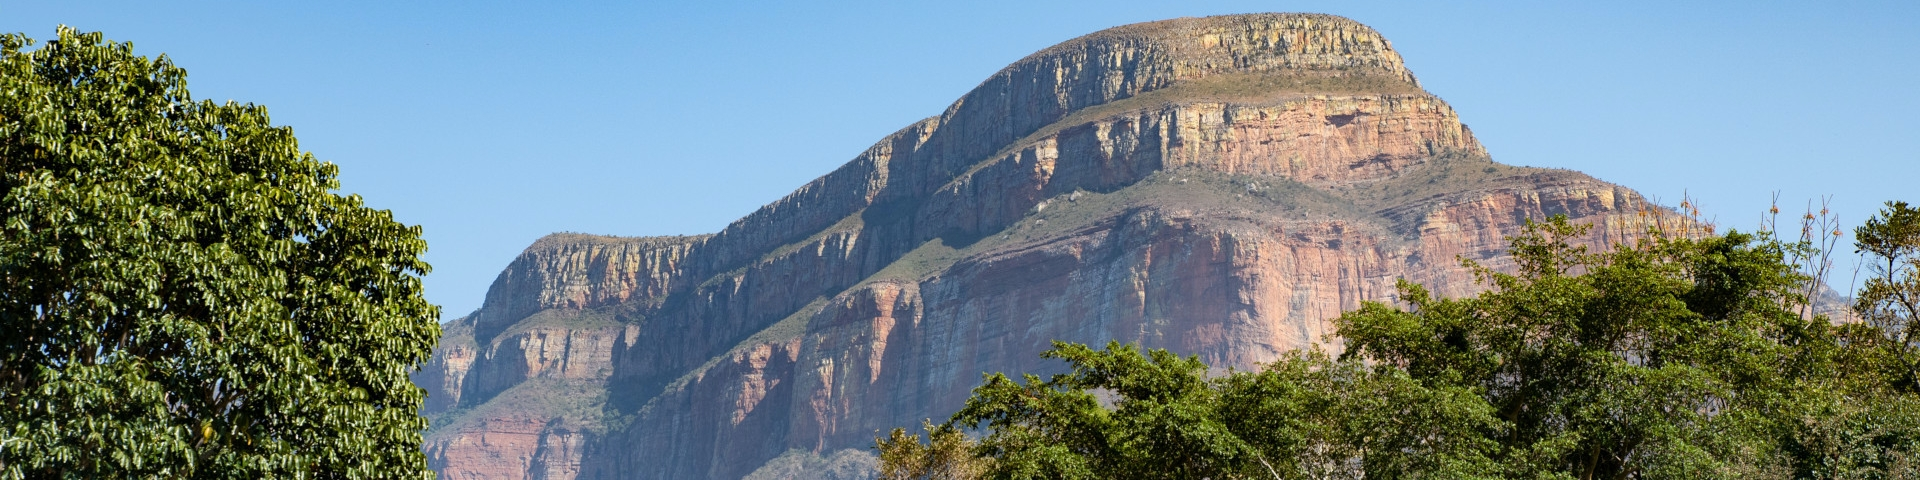 Africa Travel Guide Panorama Route South Africa Drakensberg Mountain Range Backdrop